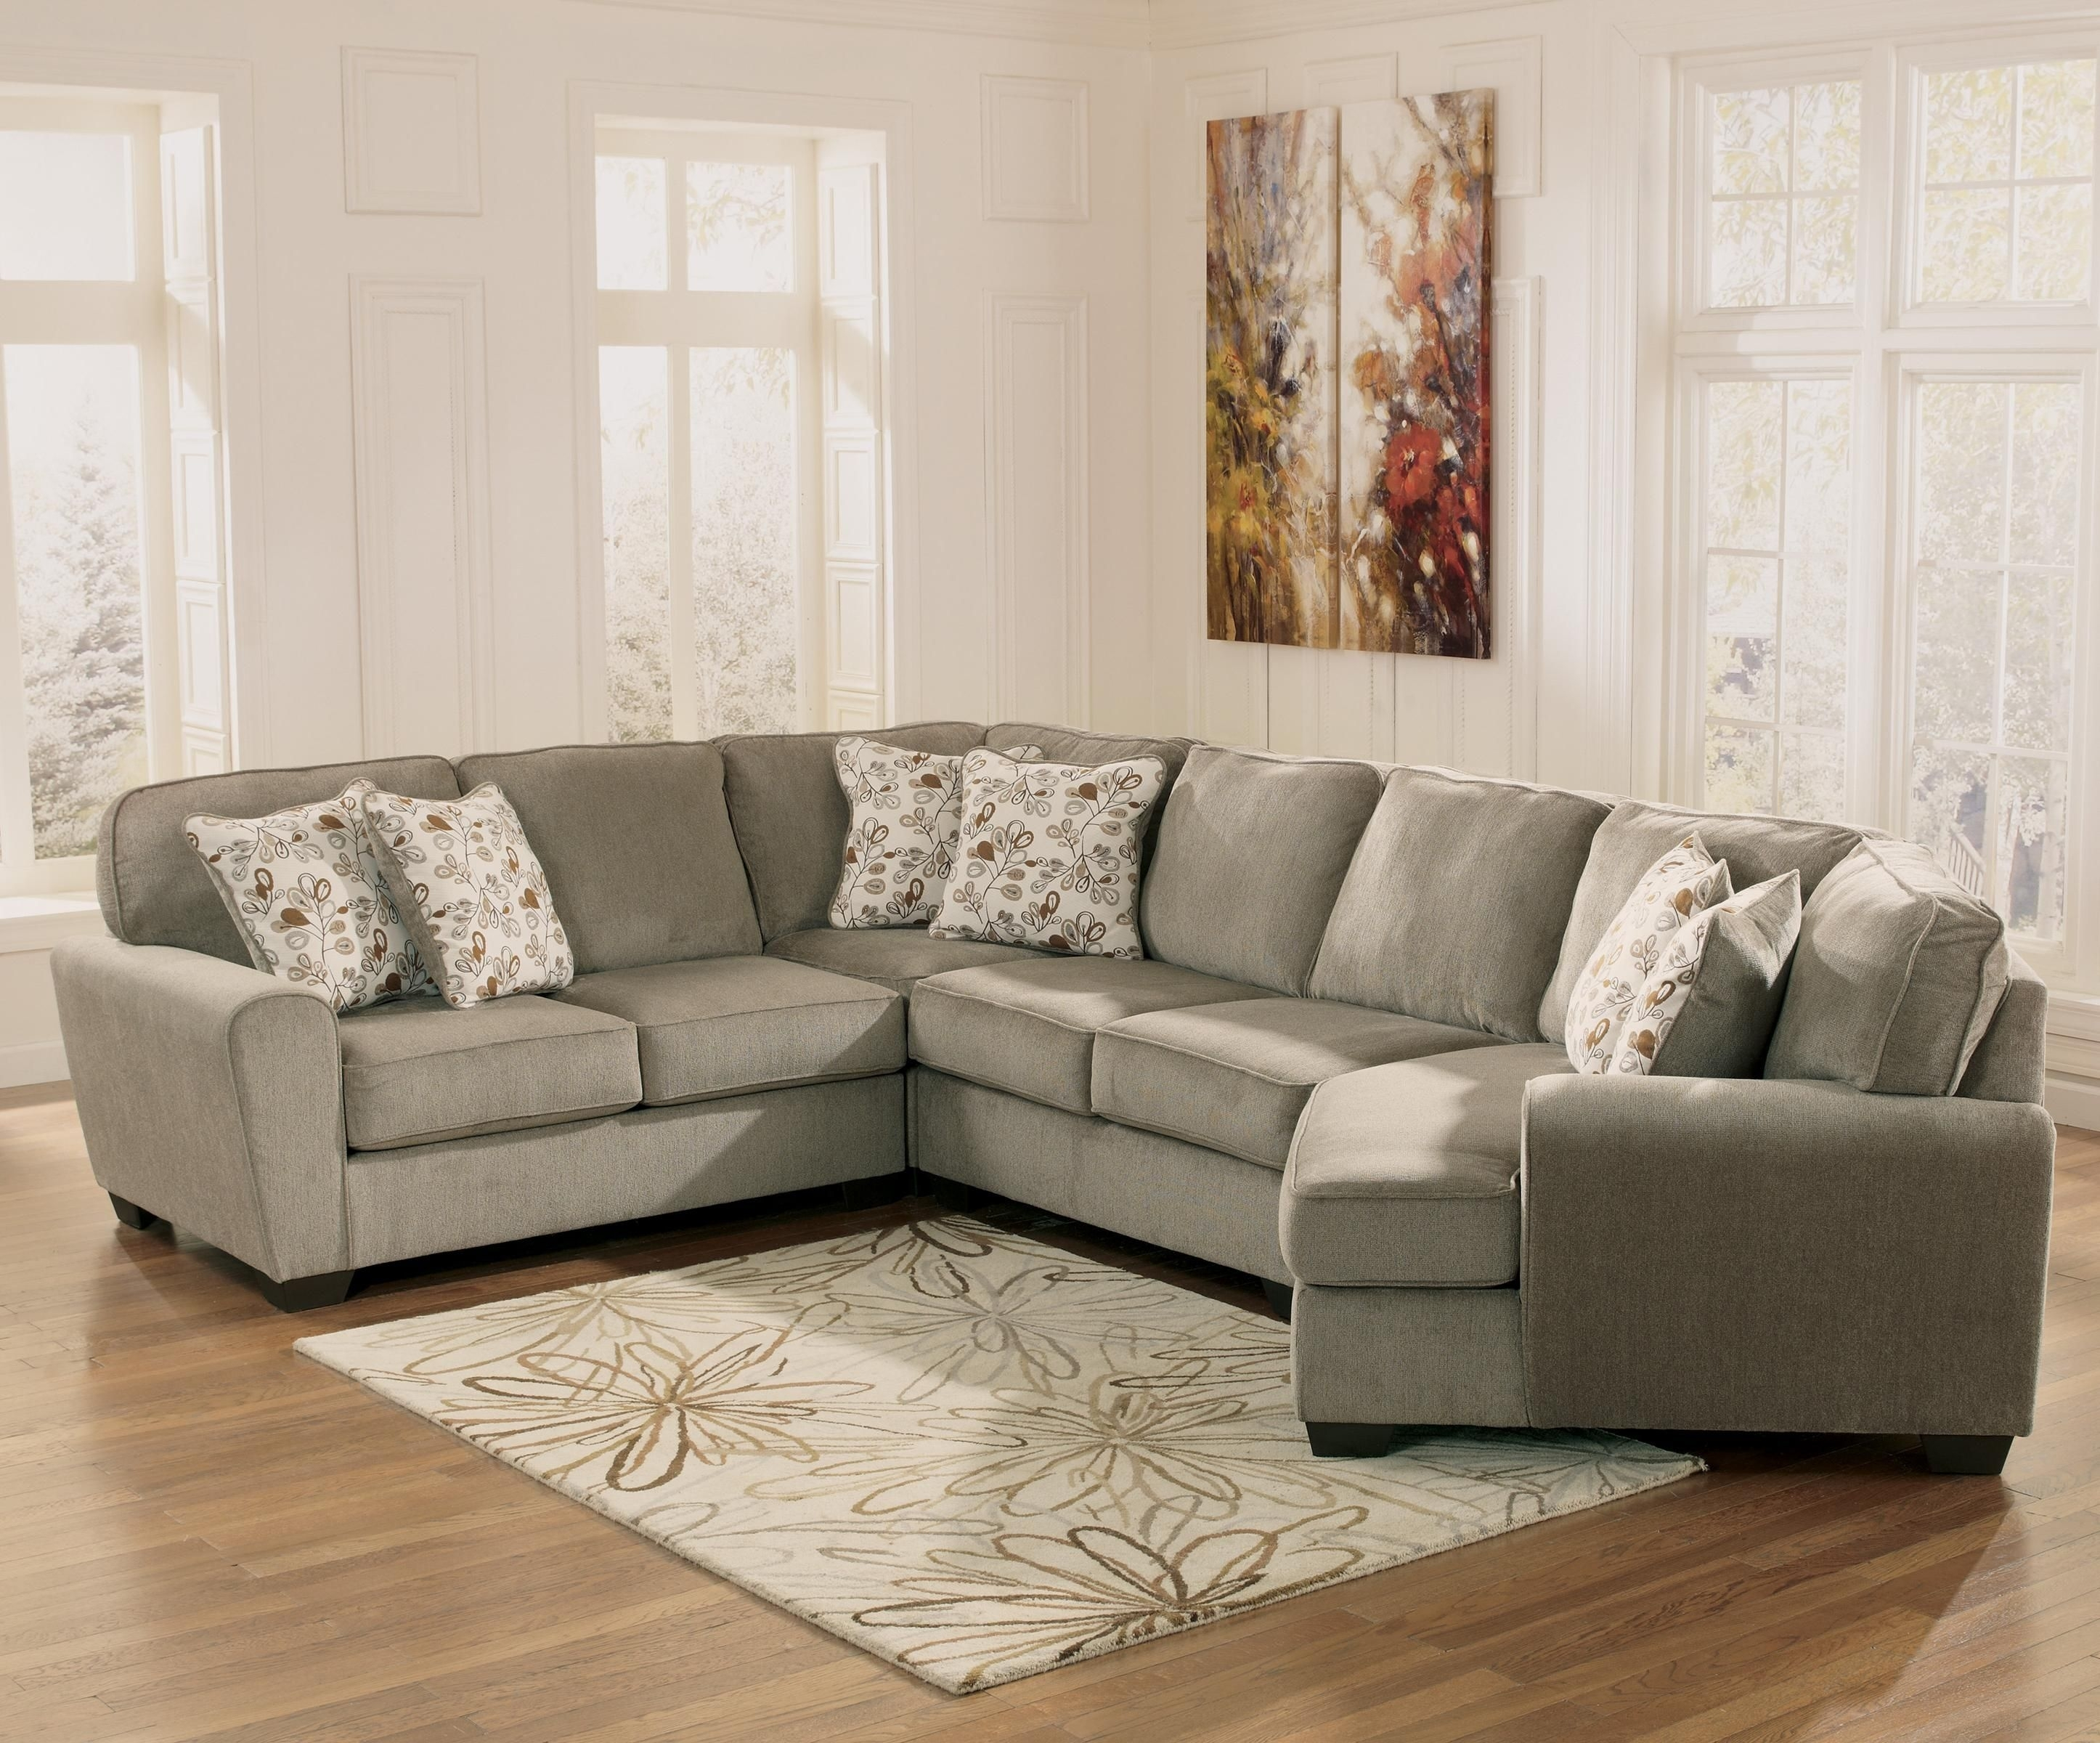 Patola Park – Patina 4 Piece Small Sectional With Right Cuddler Pertaining To Benton 4 Piece Sectionals (Image 16 of 25)